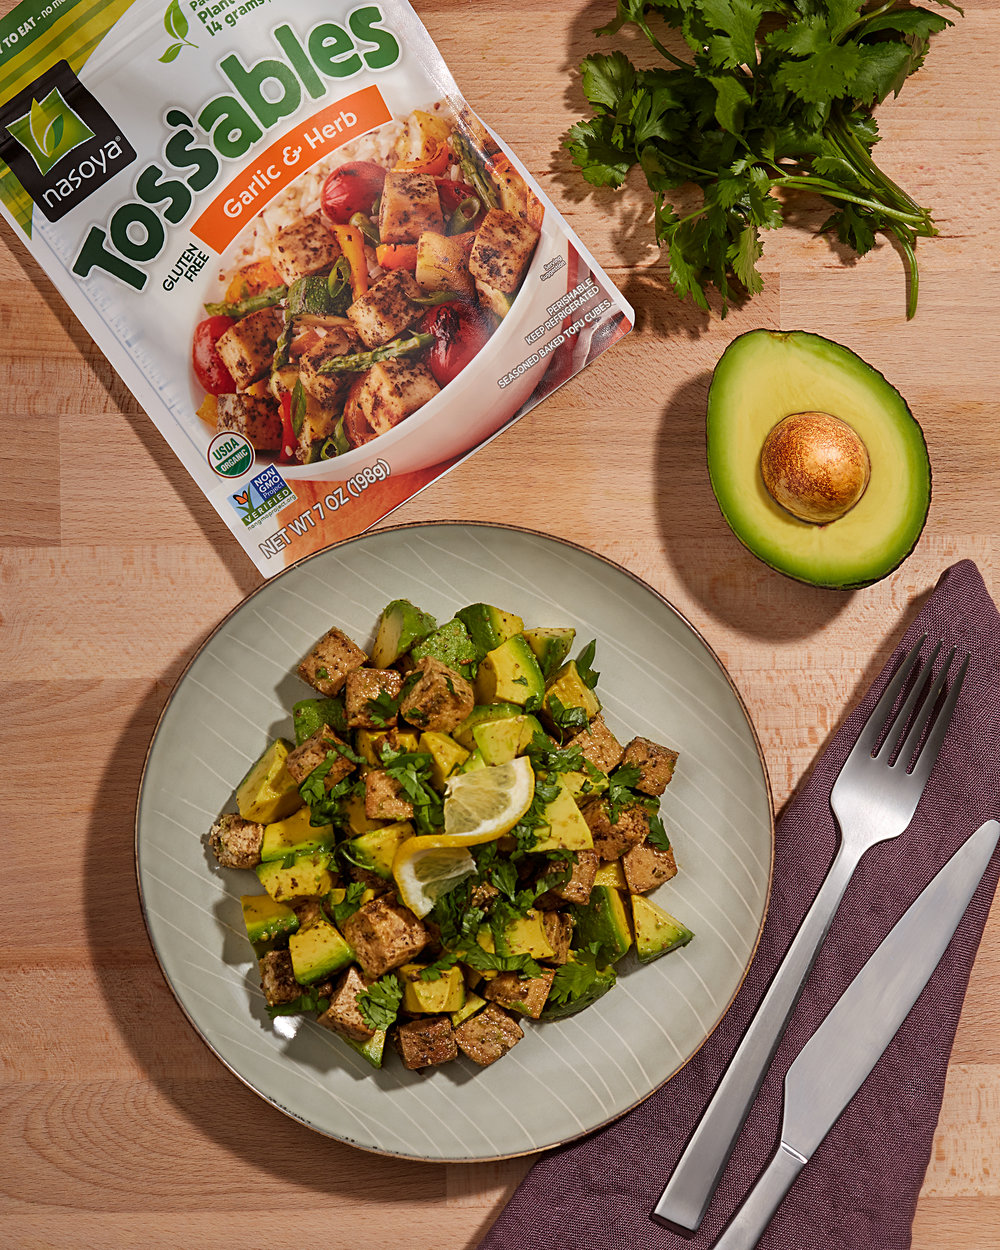 Tossables-Tofu-Avocado-Salad.jpg